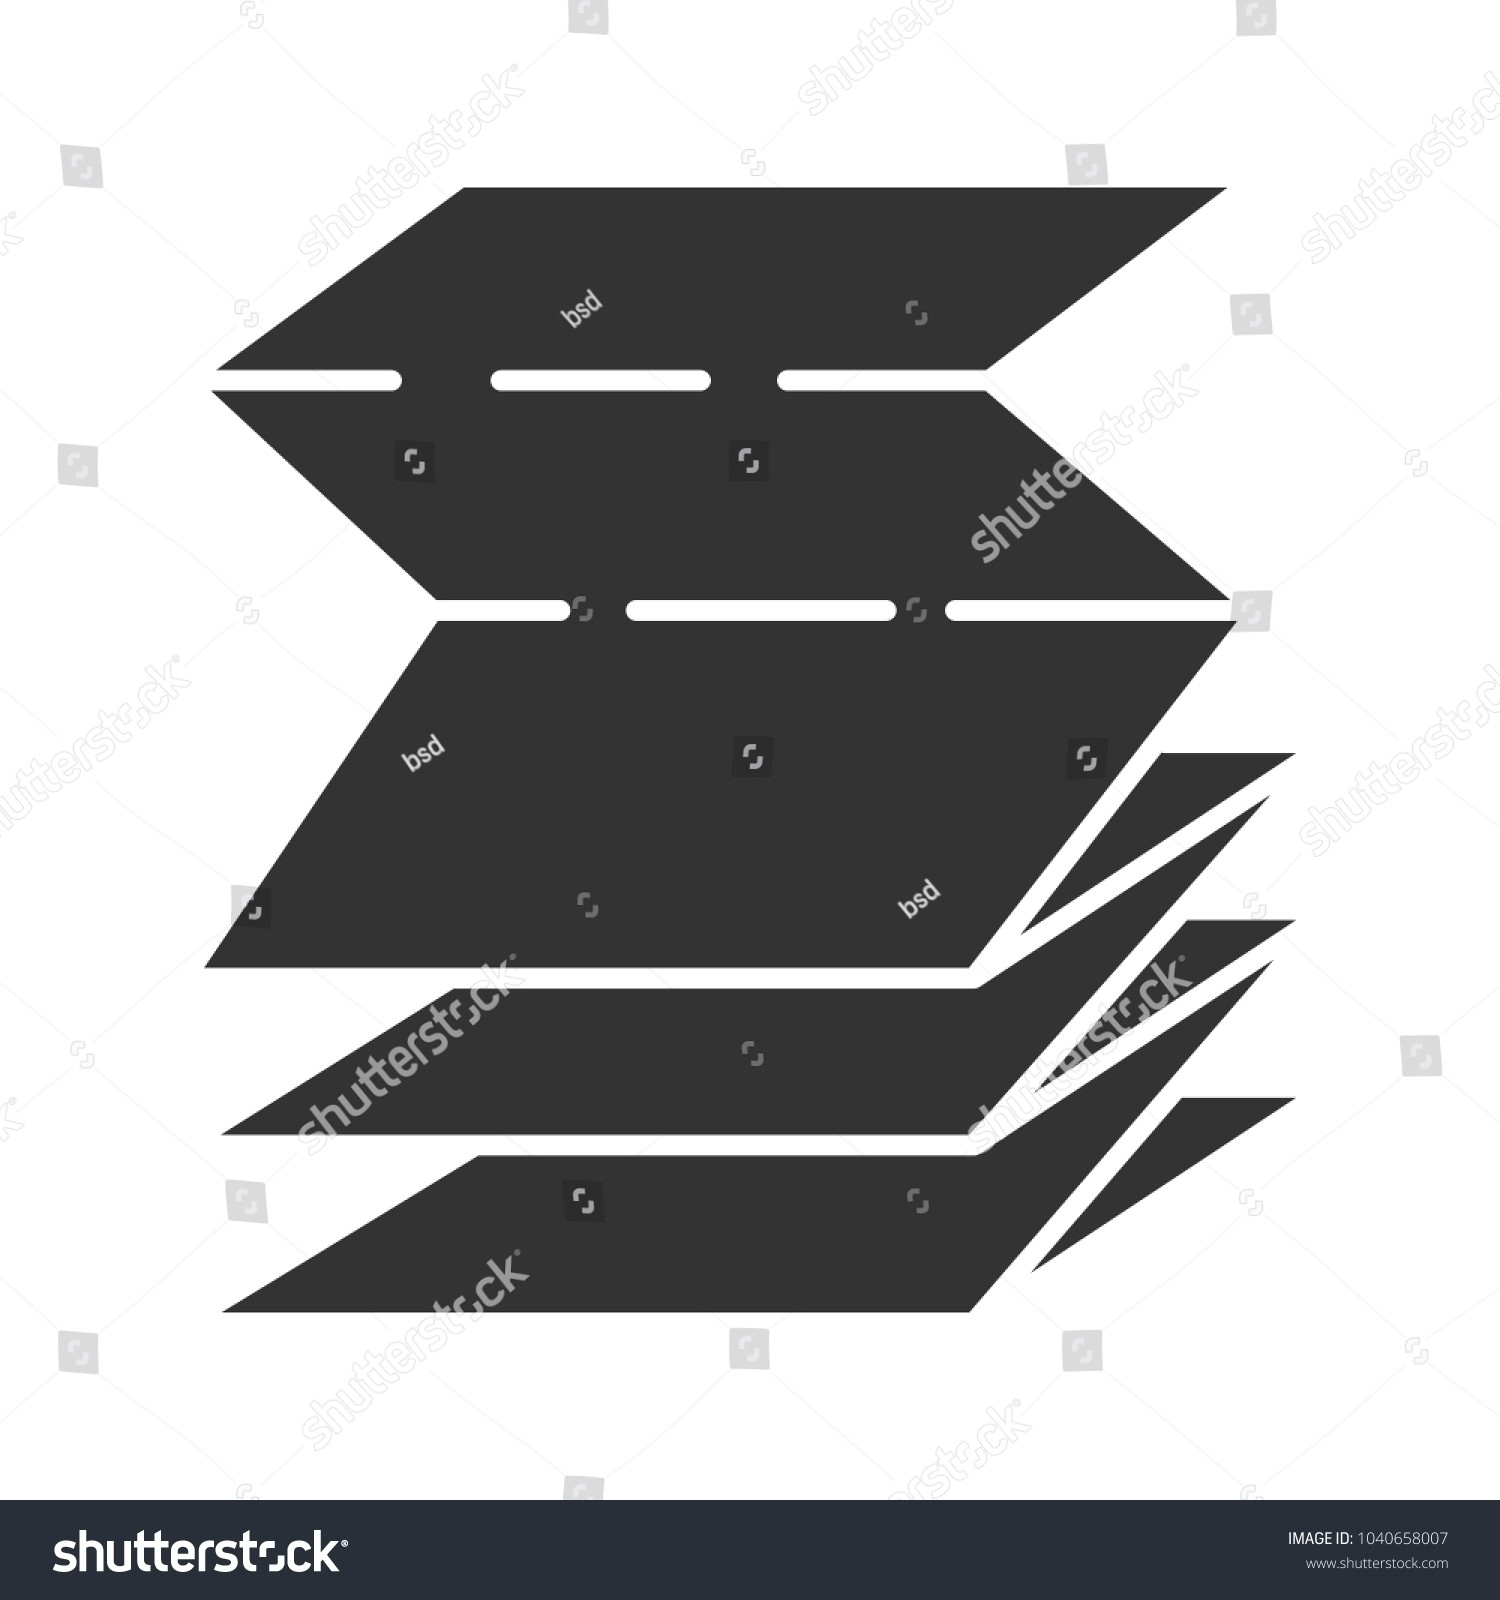 Folded Paper Leaflet Glyph Icon Blank Stock Vector (Royalty-Glyphicon Icon Is Blank